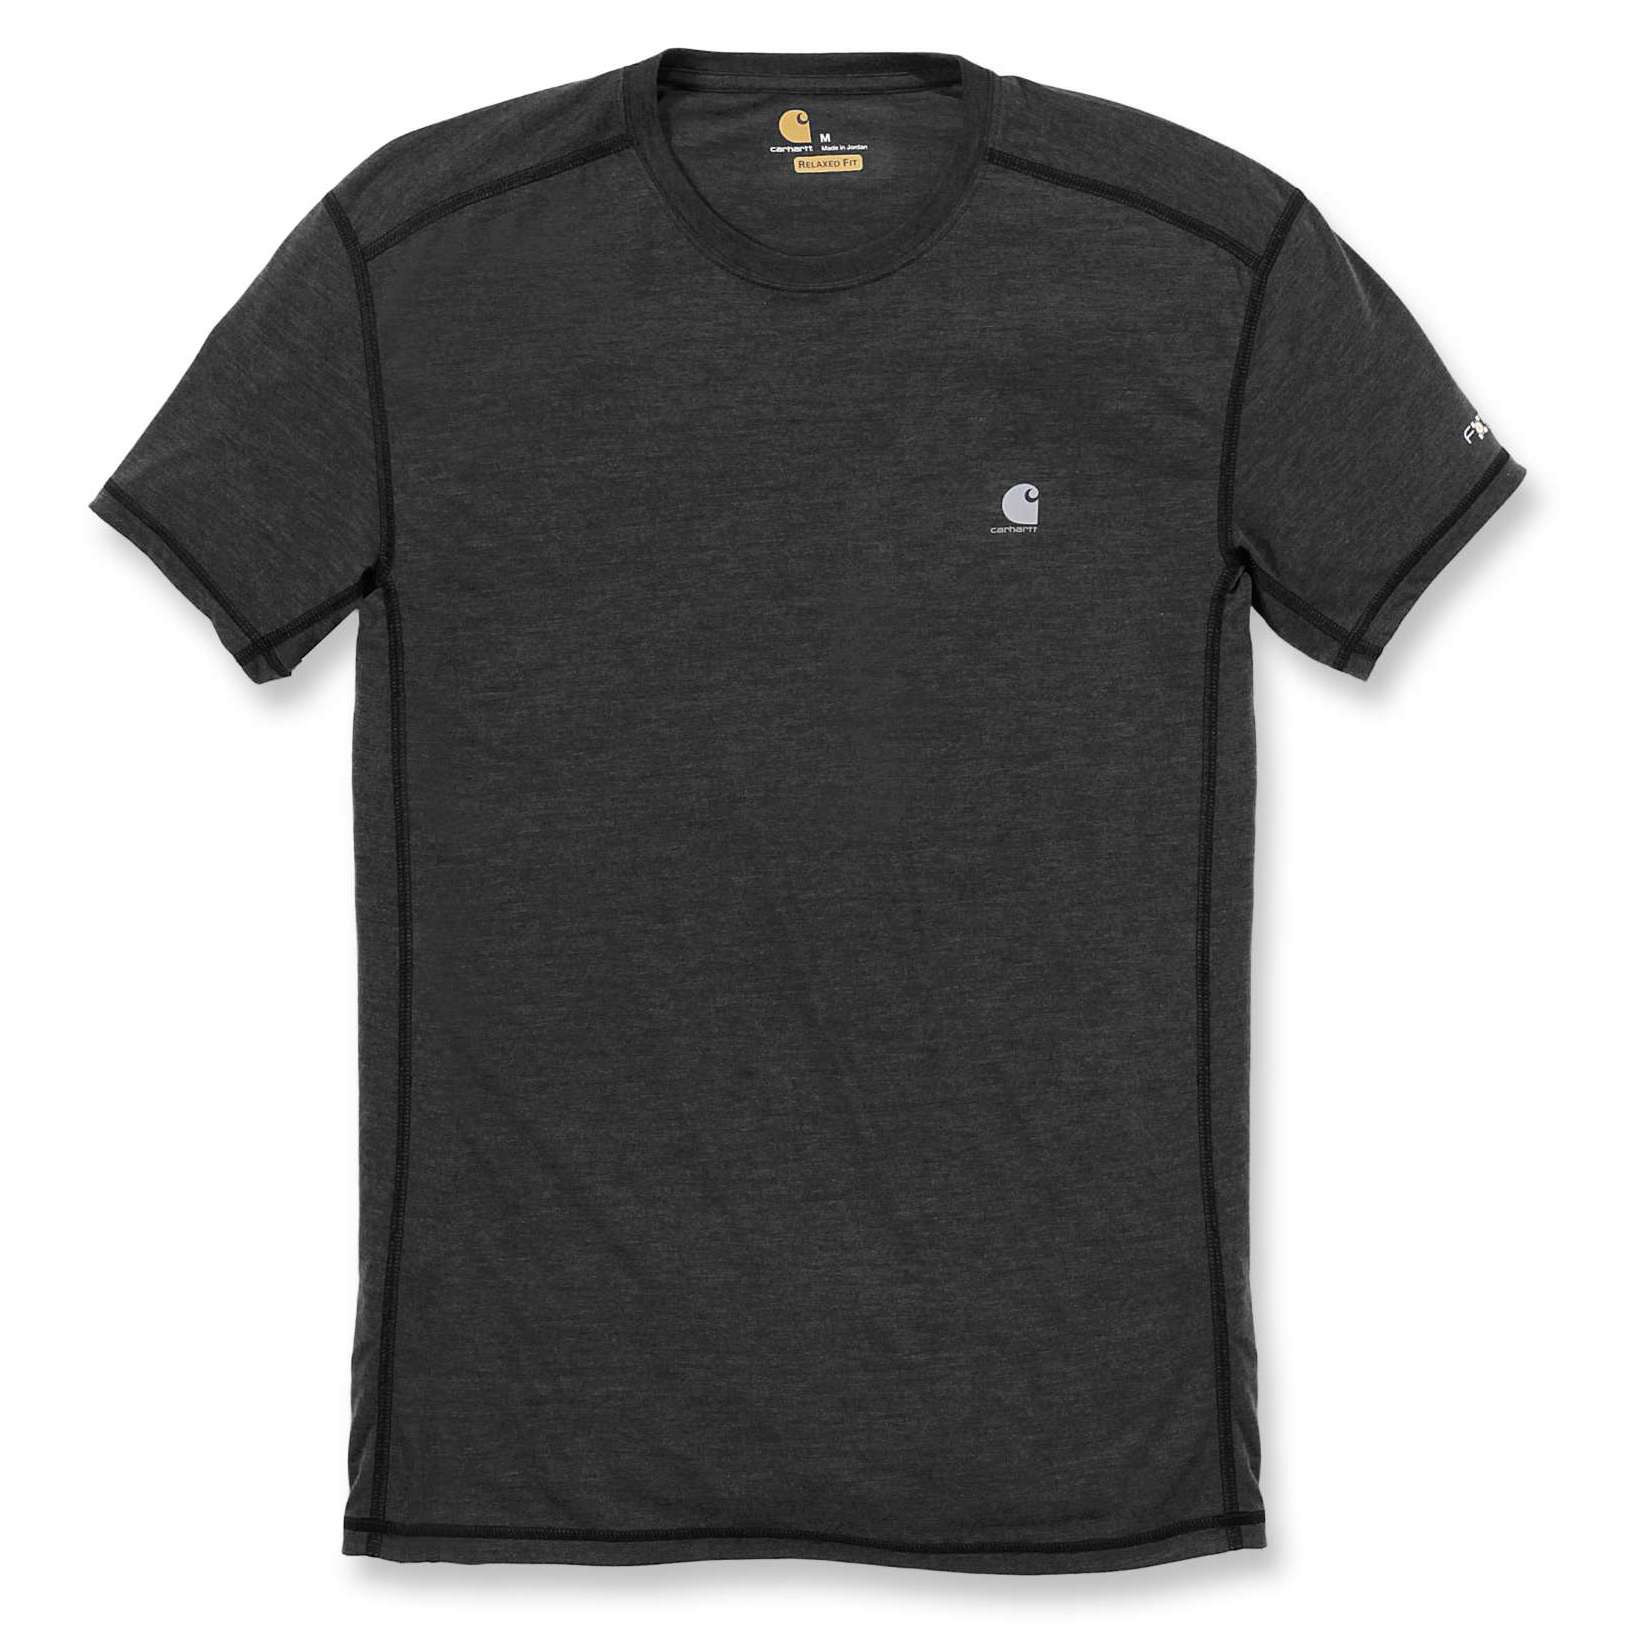 Футболка Carhartt Force Extremes T-Shirt S/S - 102960 (Black/Black Heather; S)